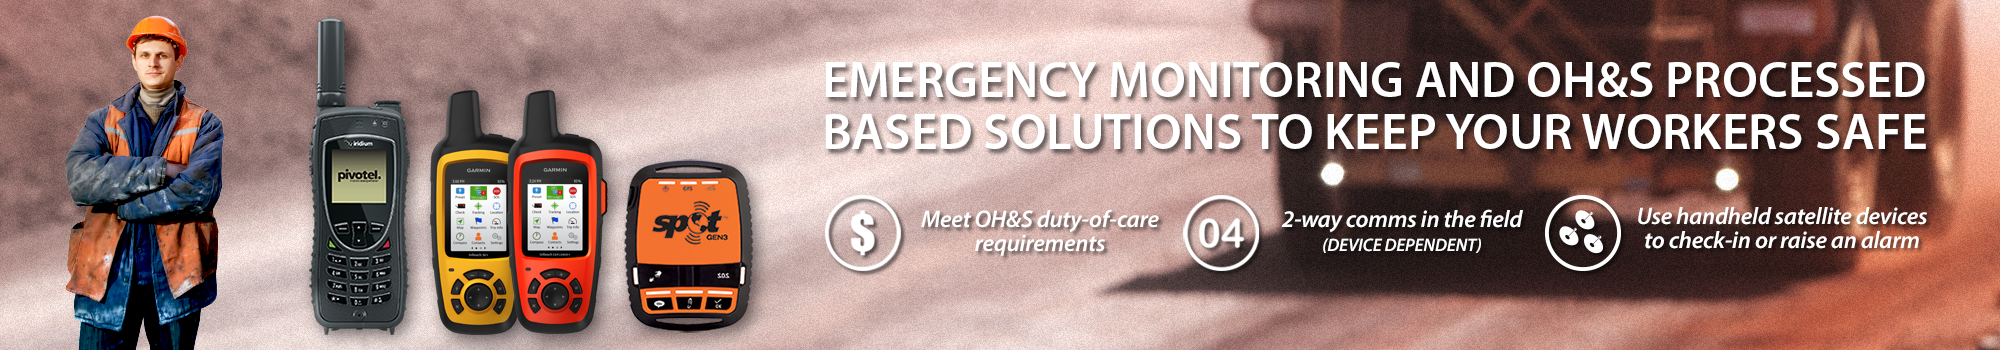 emergency monitoring and oh&s processed based solutions to keep your workers safe